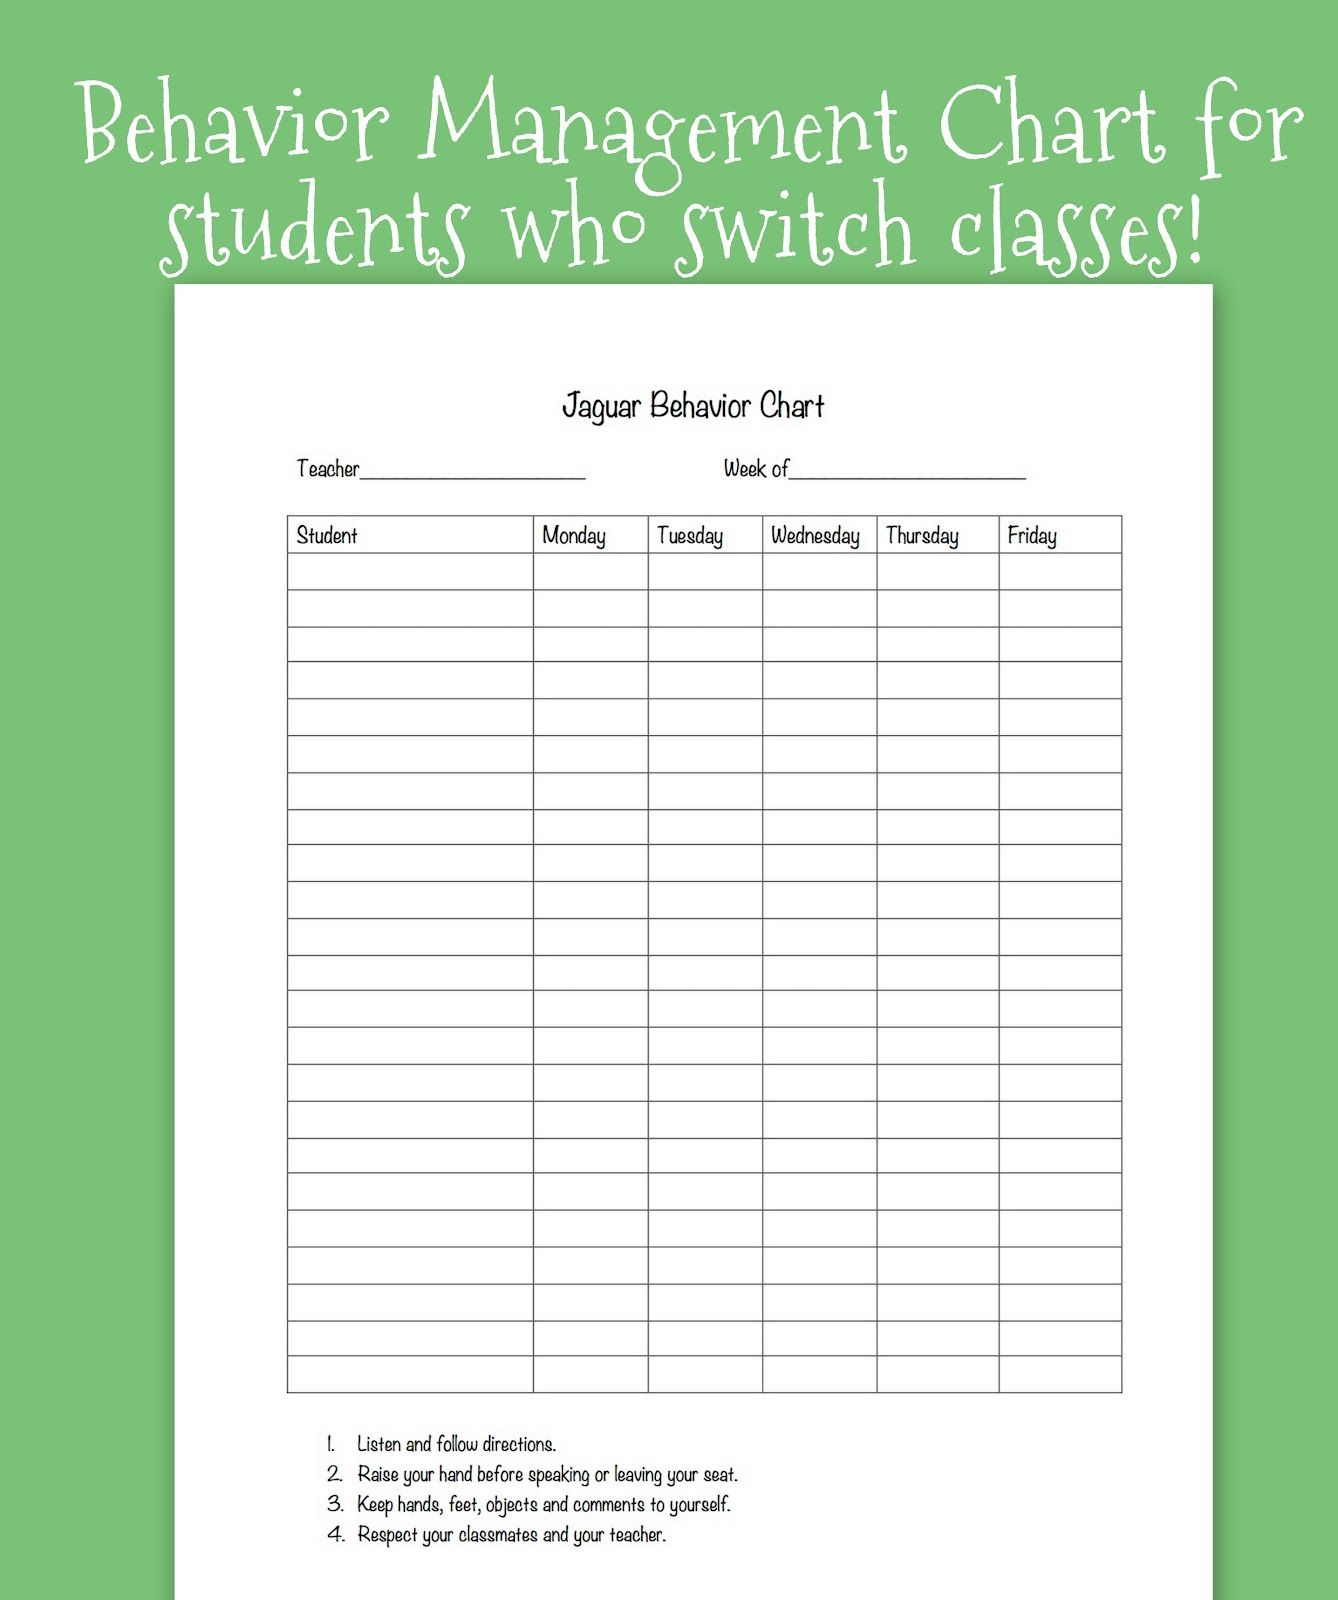 This Is A Great Template To Be Used By Teachers To Adapt And Modify It To Each Individual Stude Behavior System School Behavior Chart Classroom Behavior System